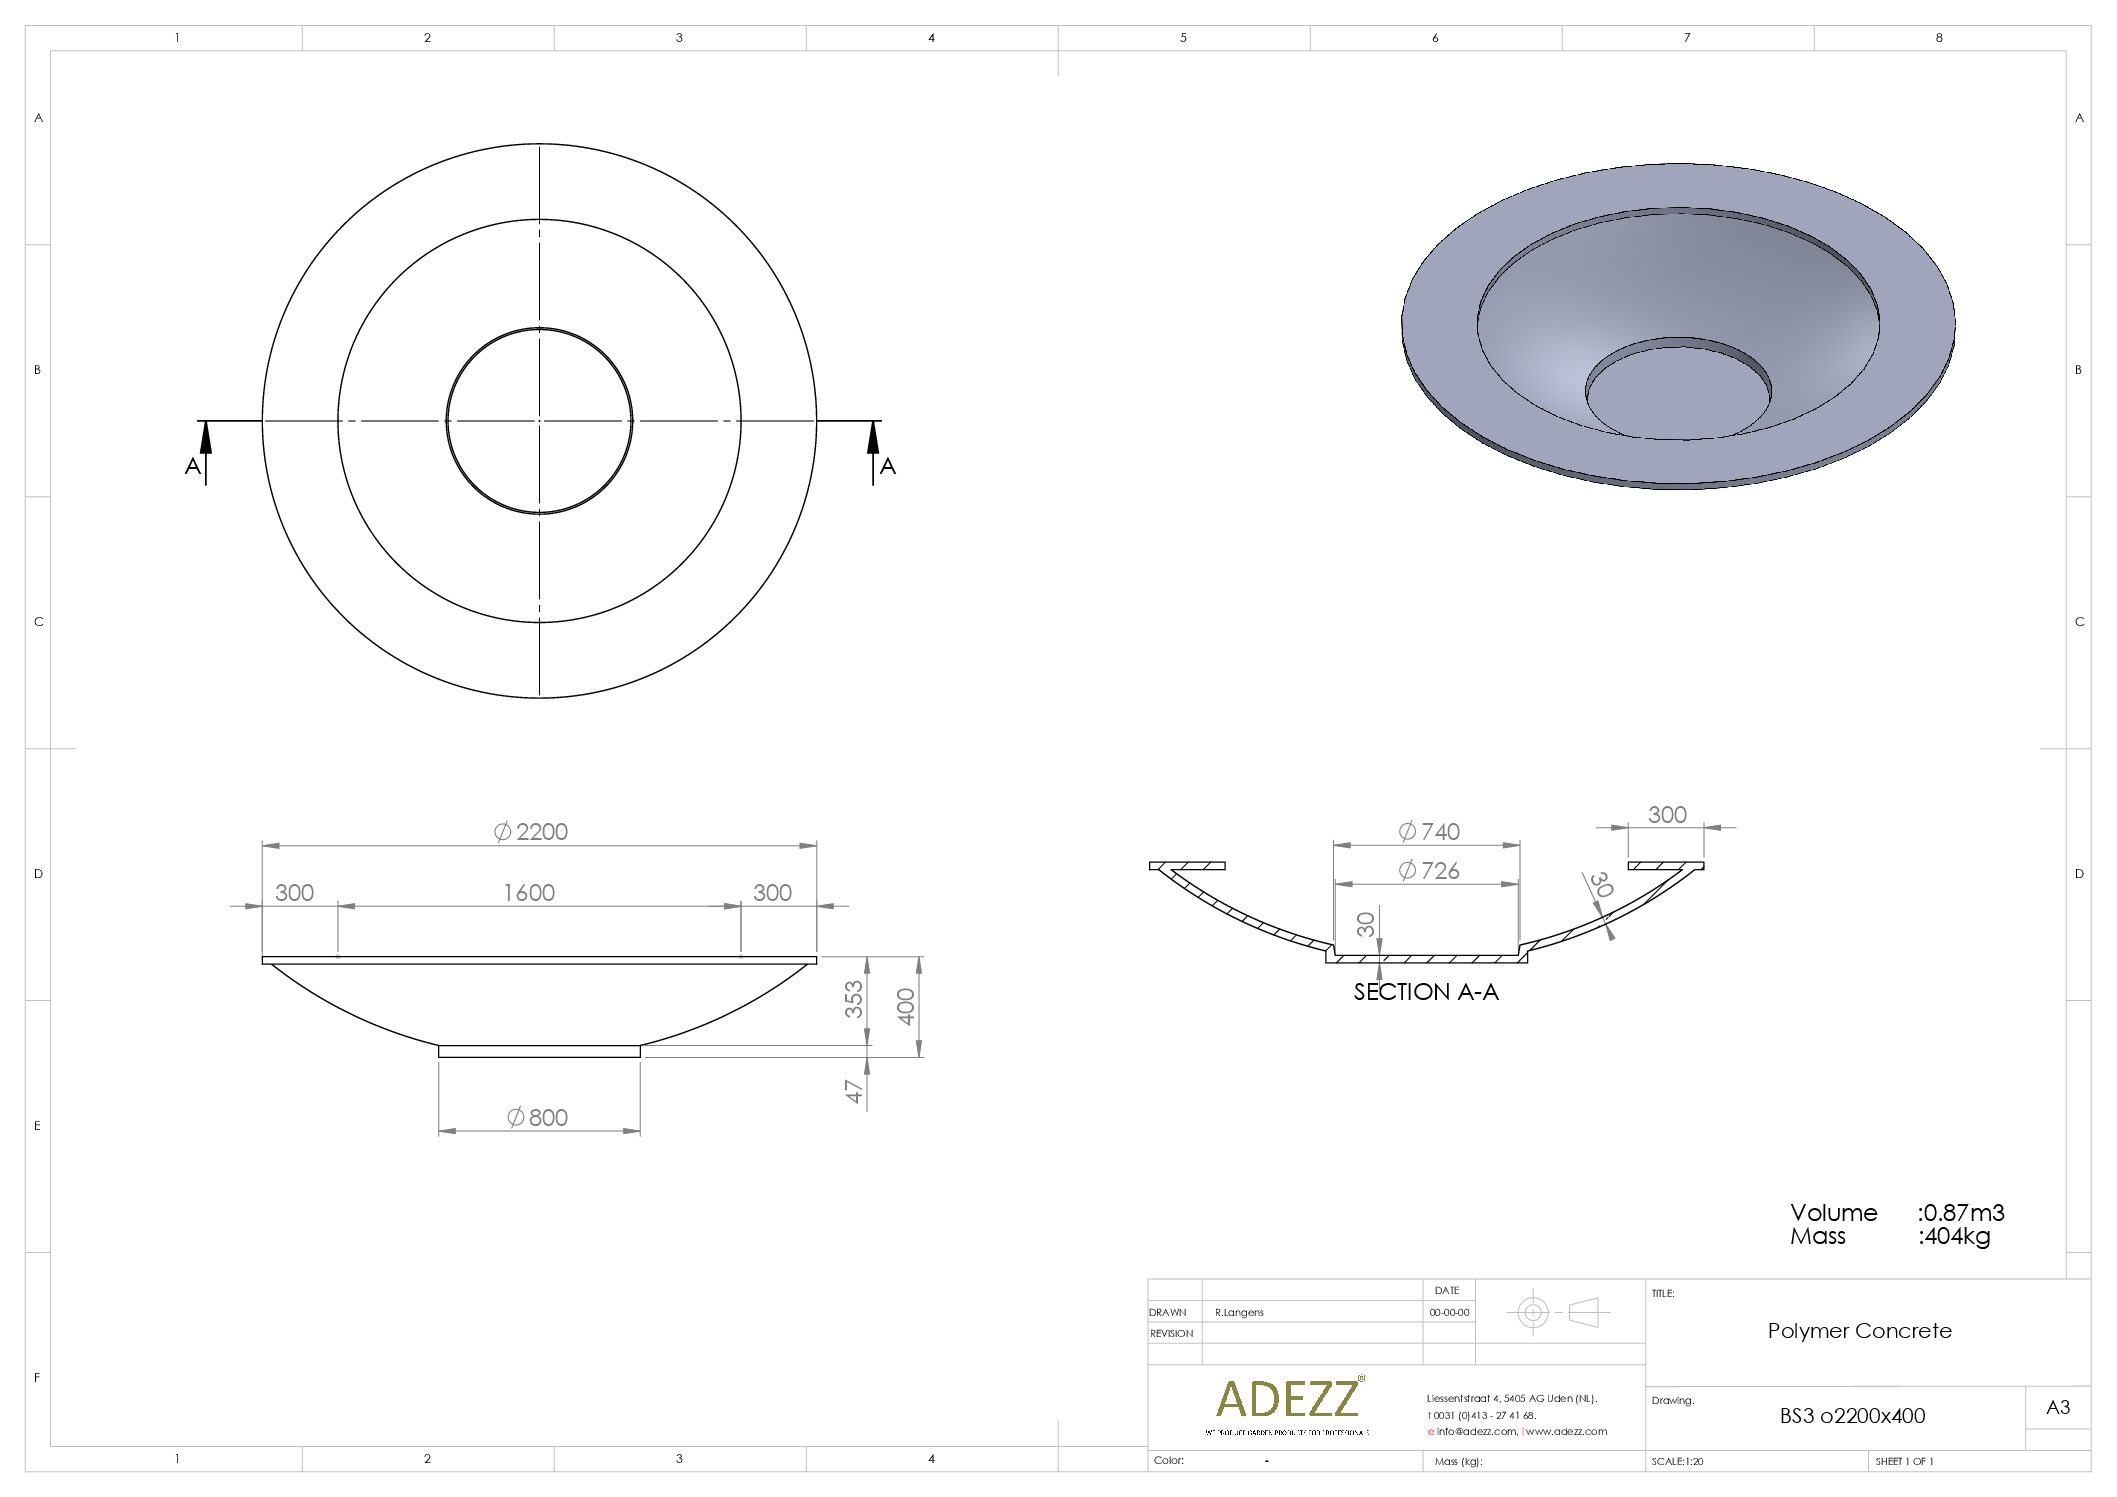 Adezz Besso Polymer Concrete Planter Seat Bowl Technical Drawing